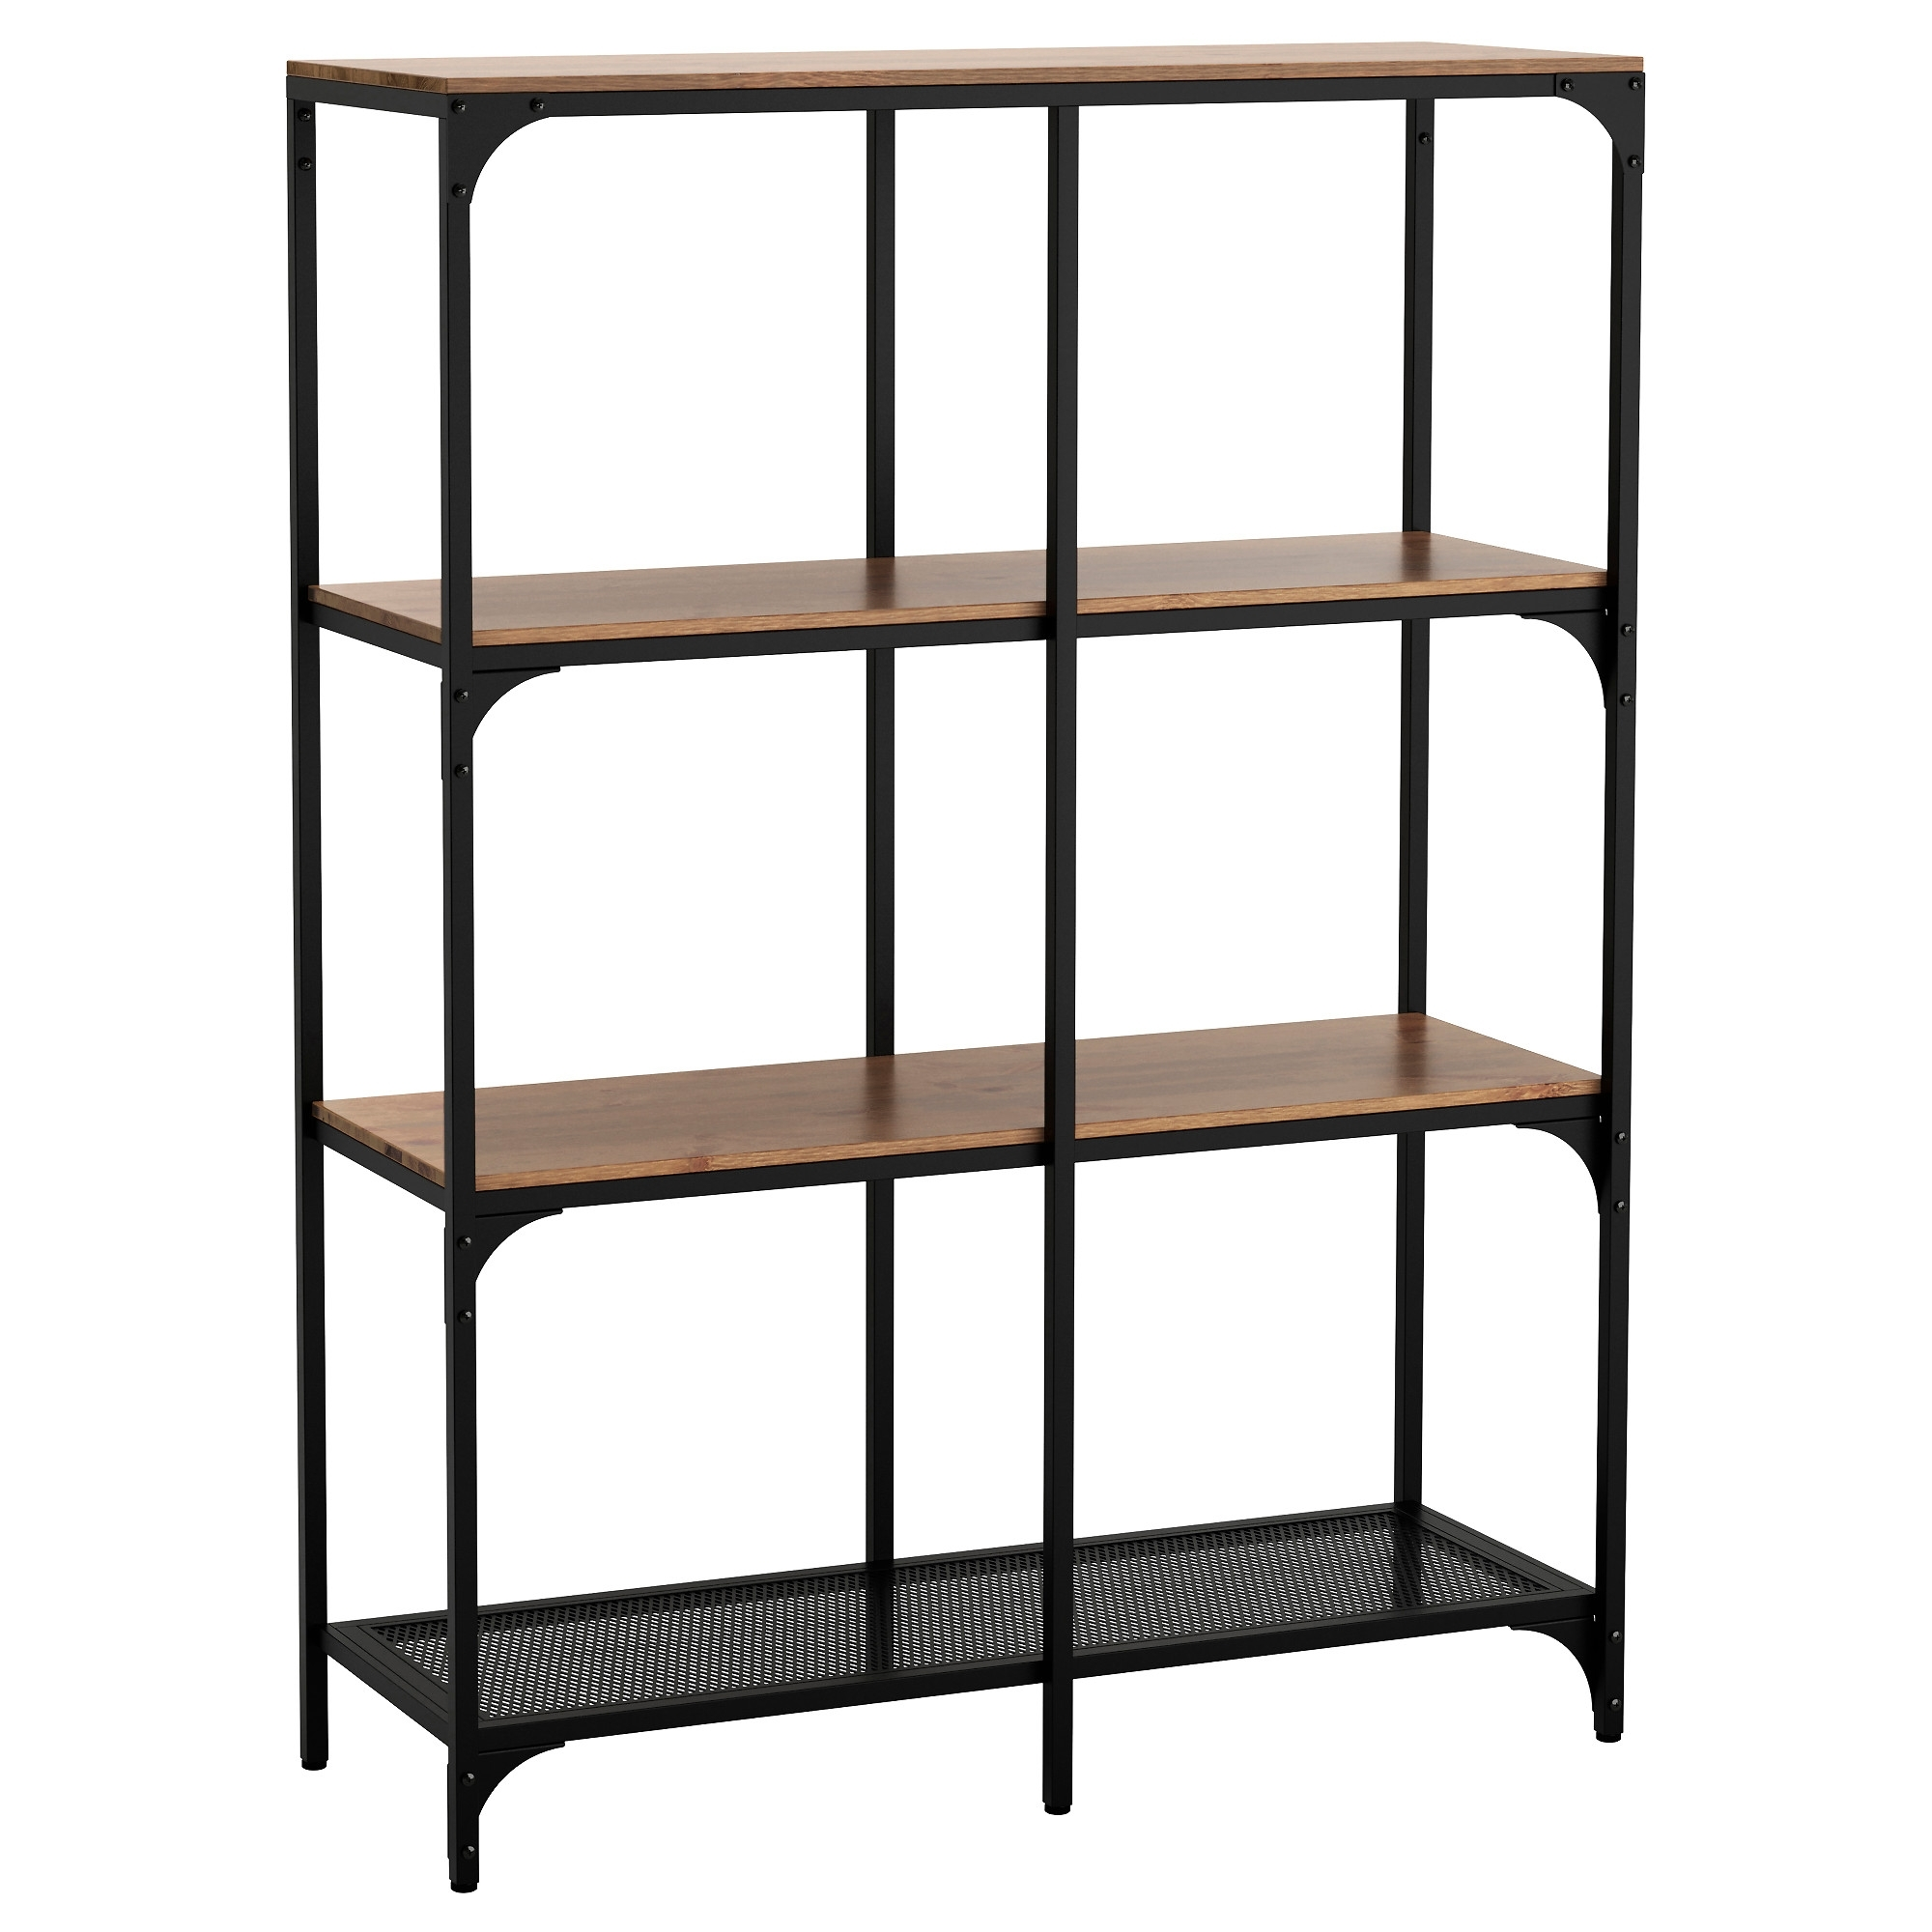 Fjällbo Shelving Unit Black 100X136 Cm – Ikea Regarding Fashionable Cheap Shelving Units (View 6 of 15)